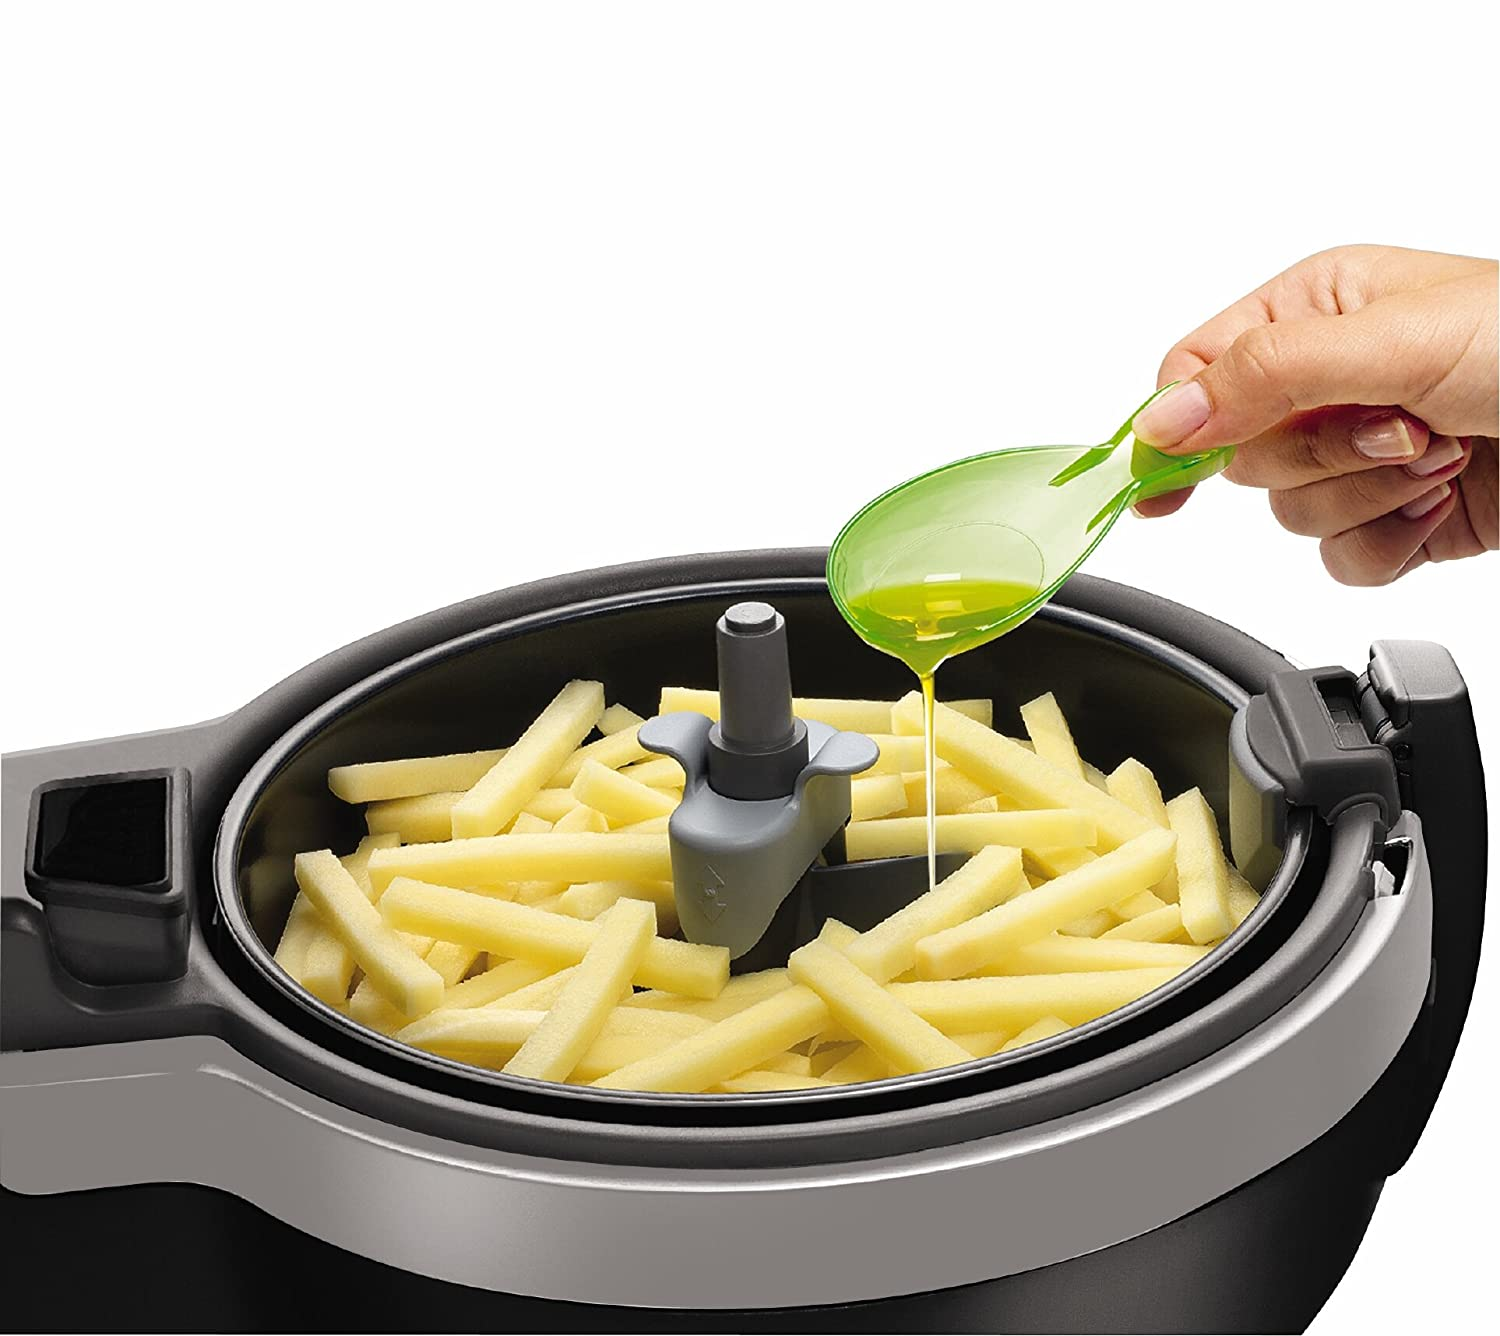 The T-fal FZ7002 ActiFry uses very little oil and is a high quality Multi-Cooker.